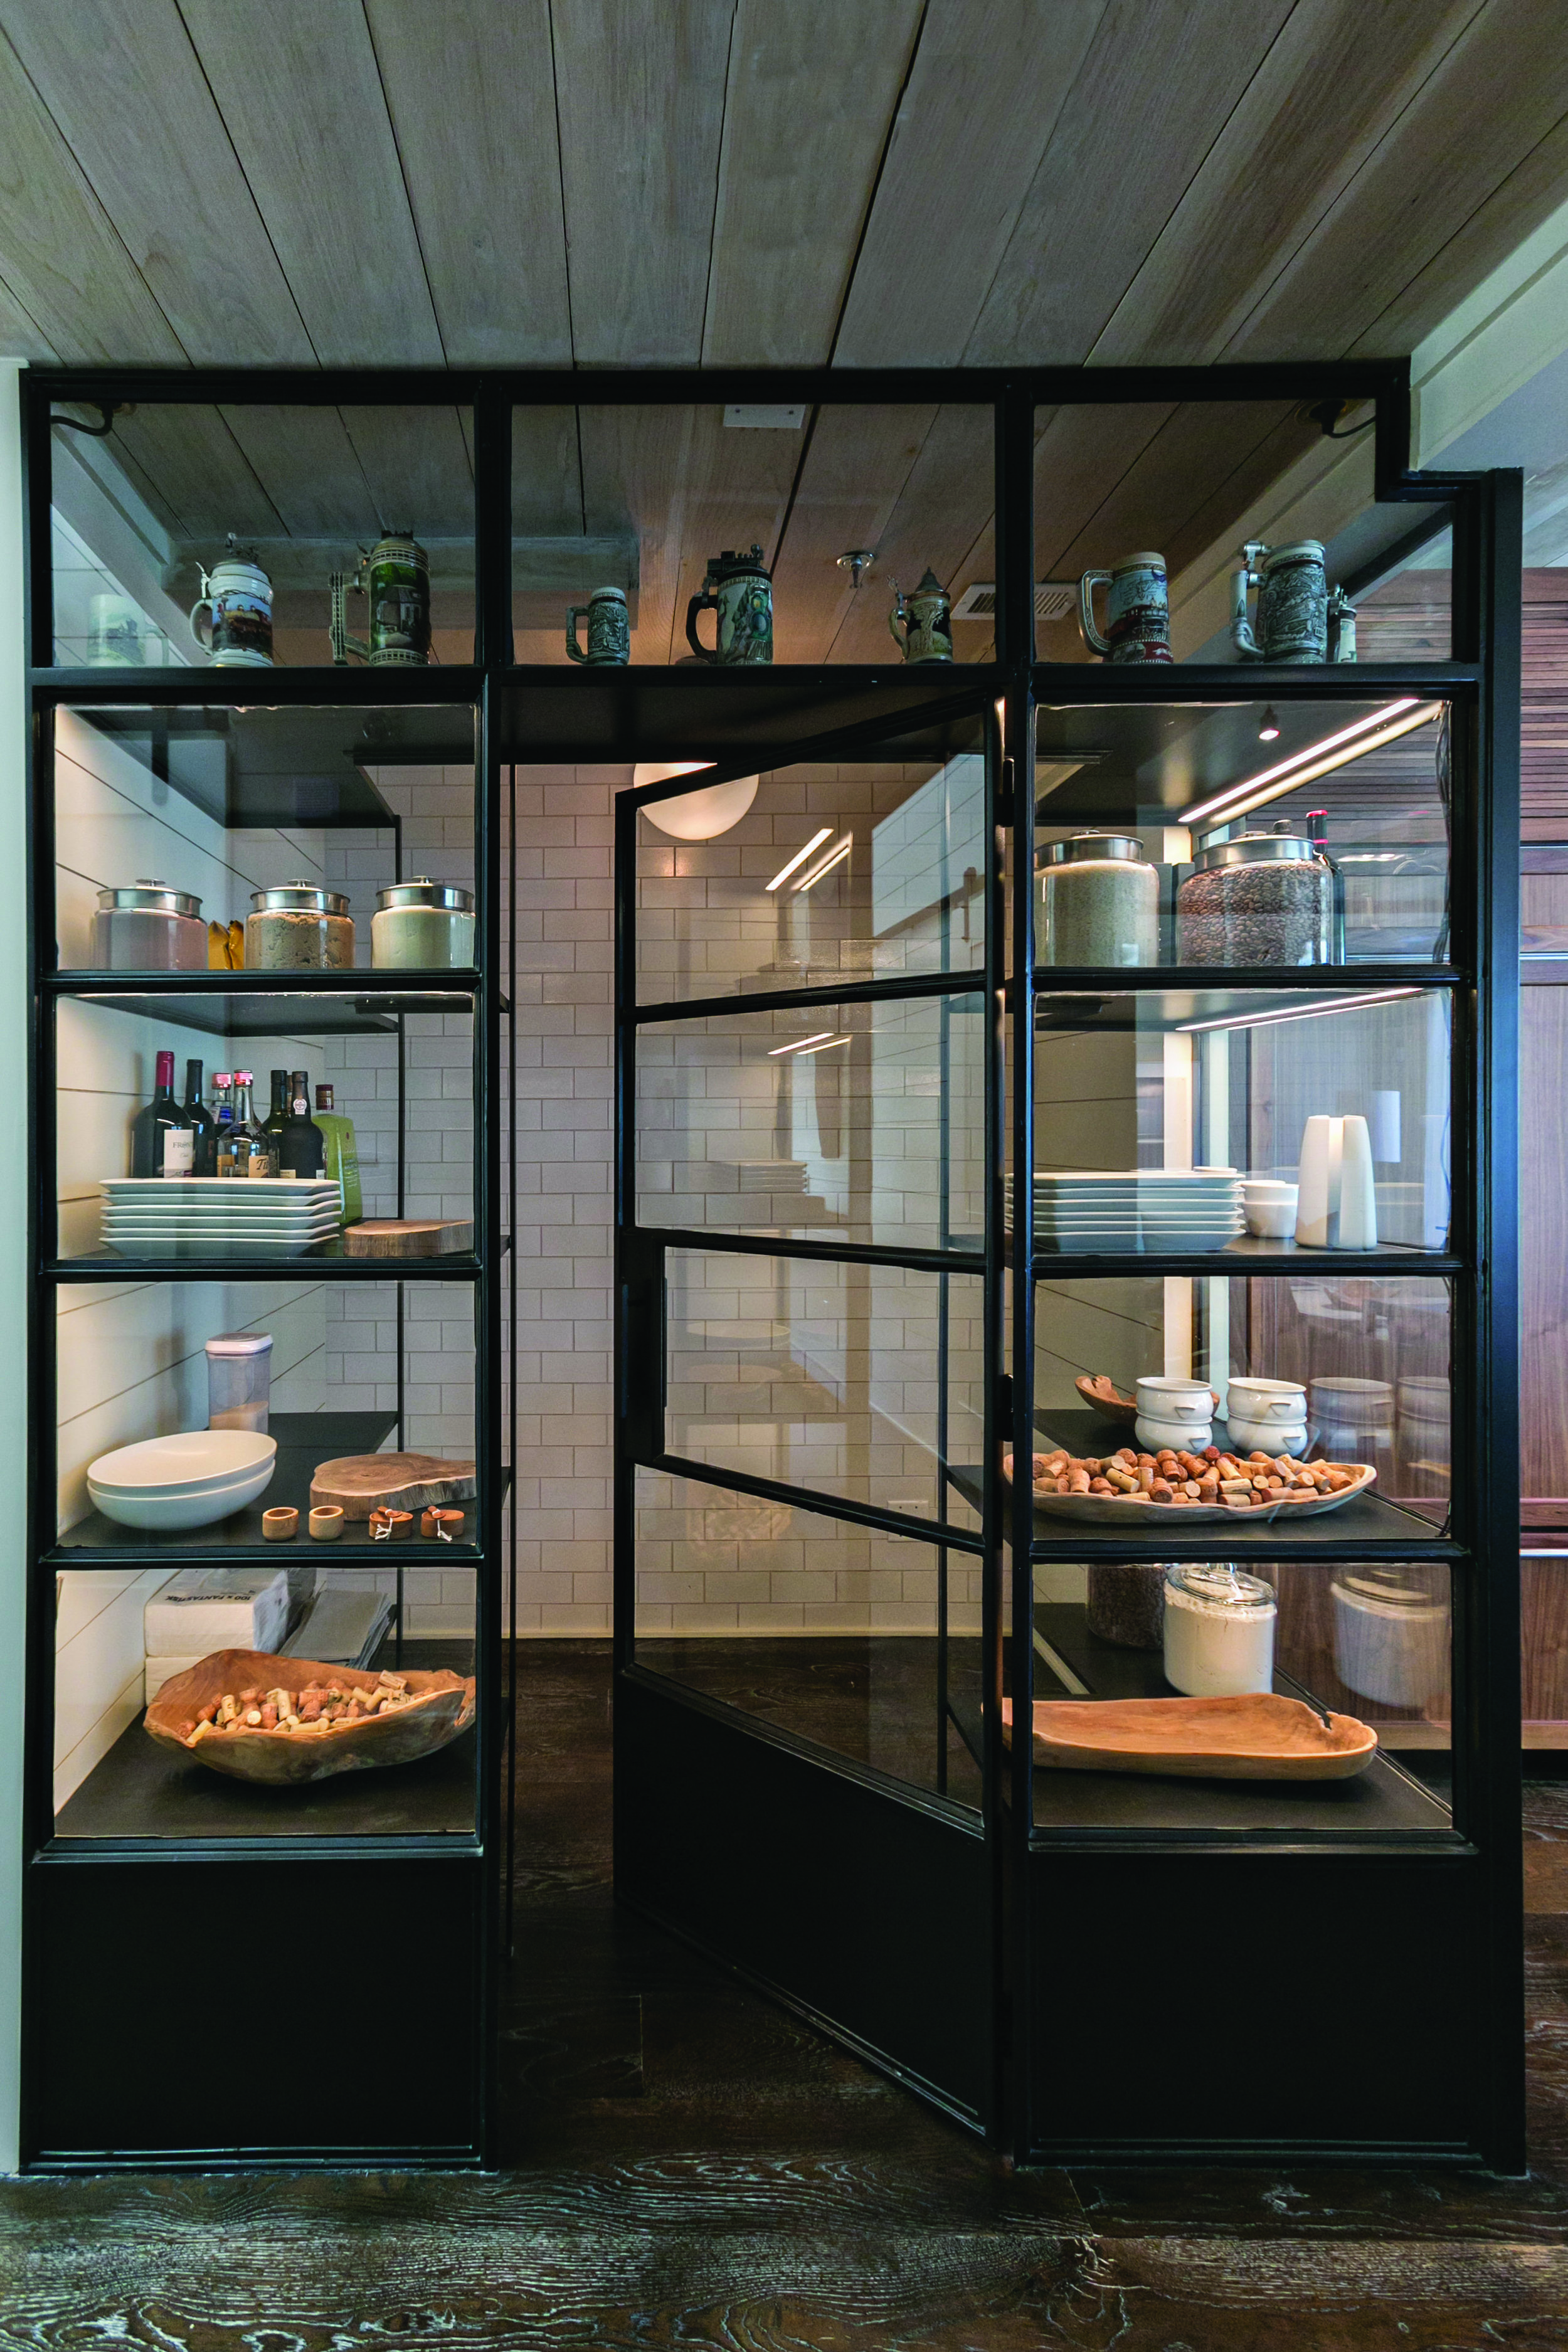 Custom kitchen pantry made of steel and glass walls. Photo by    J. Ashley Photography   .